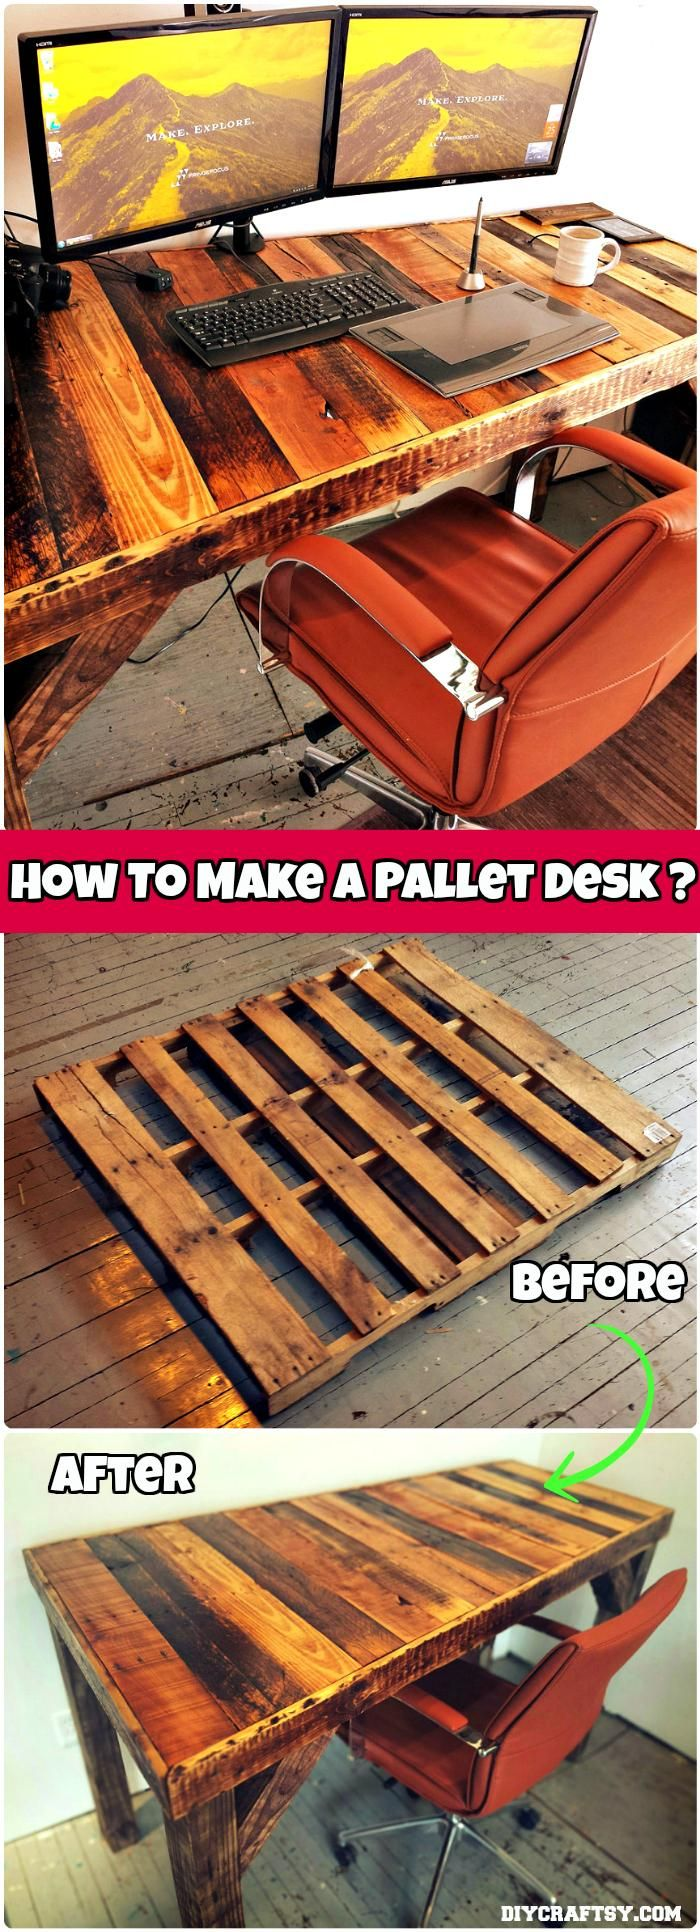 150 Best Diy Pallet Projects And Pallet Furniture Crafts Page 28 Of 75 Projetos Com Paletes De Madeira Projetos De Paletes Mobiliario Com Paletes De Madeira